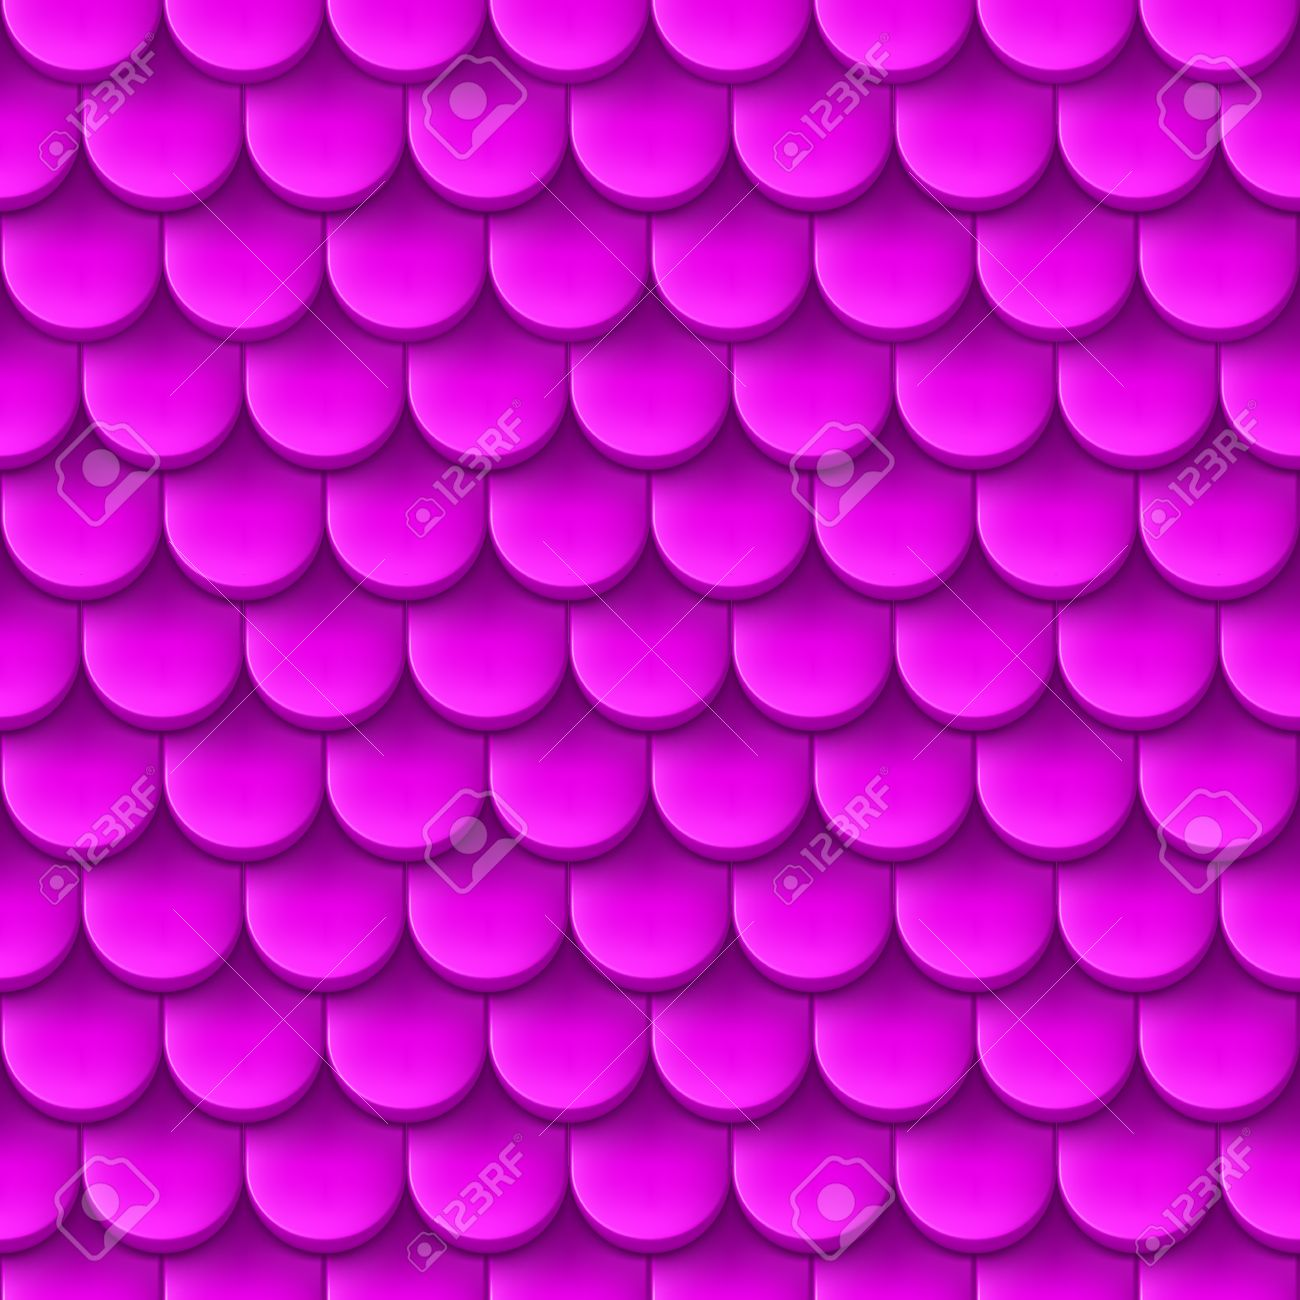 Abstract Background With Roof Tile Pattern In Purple Color.